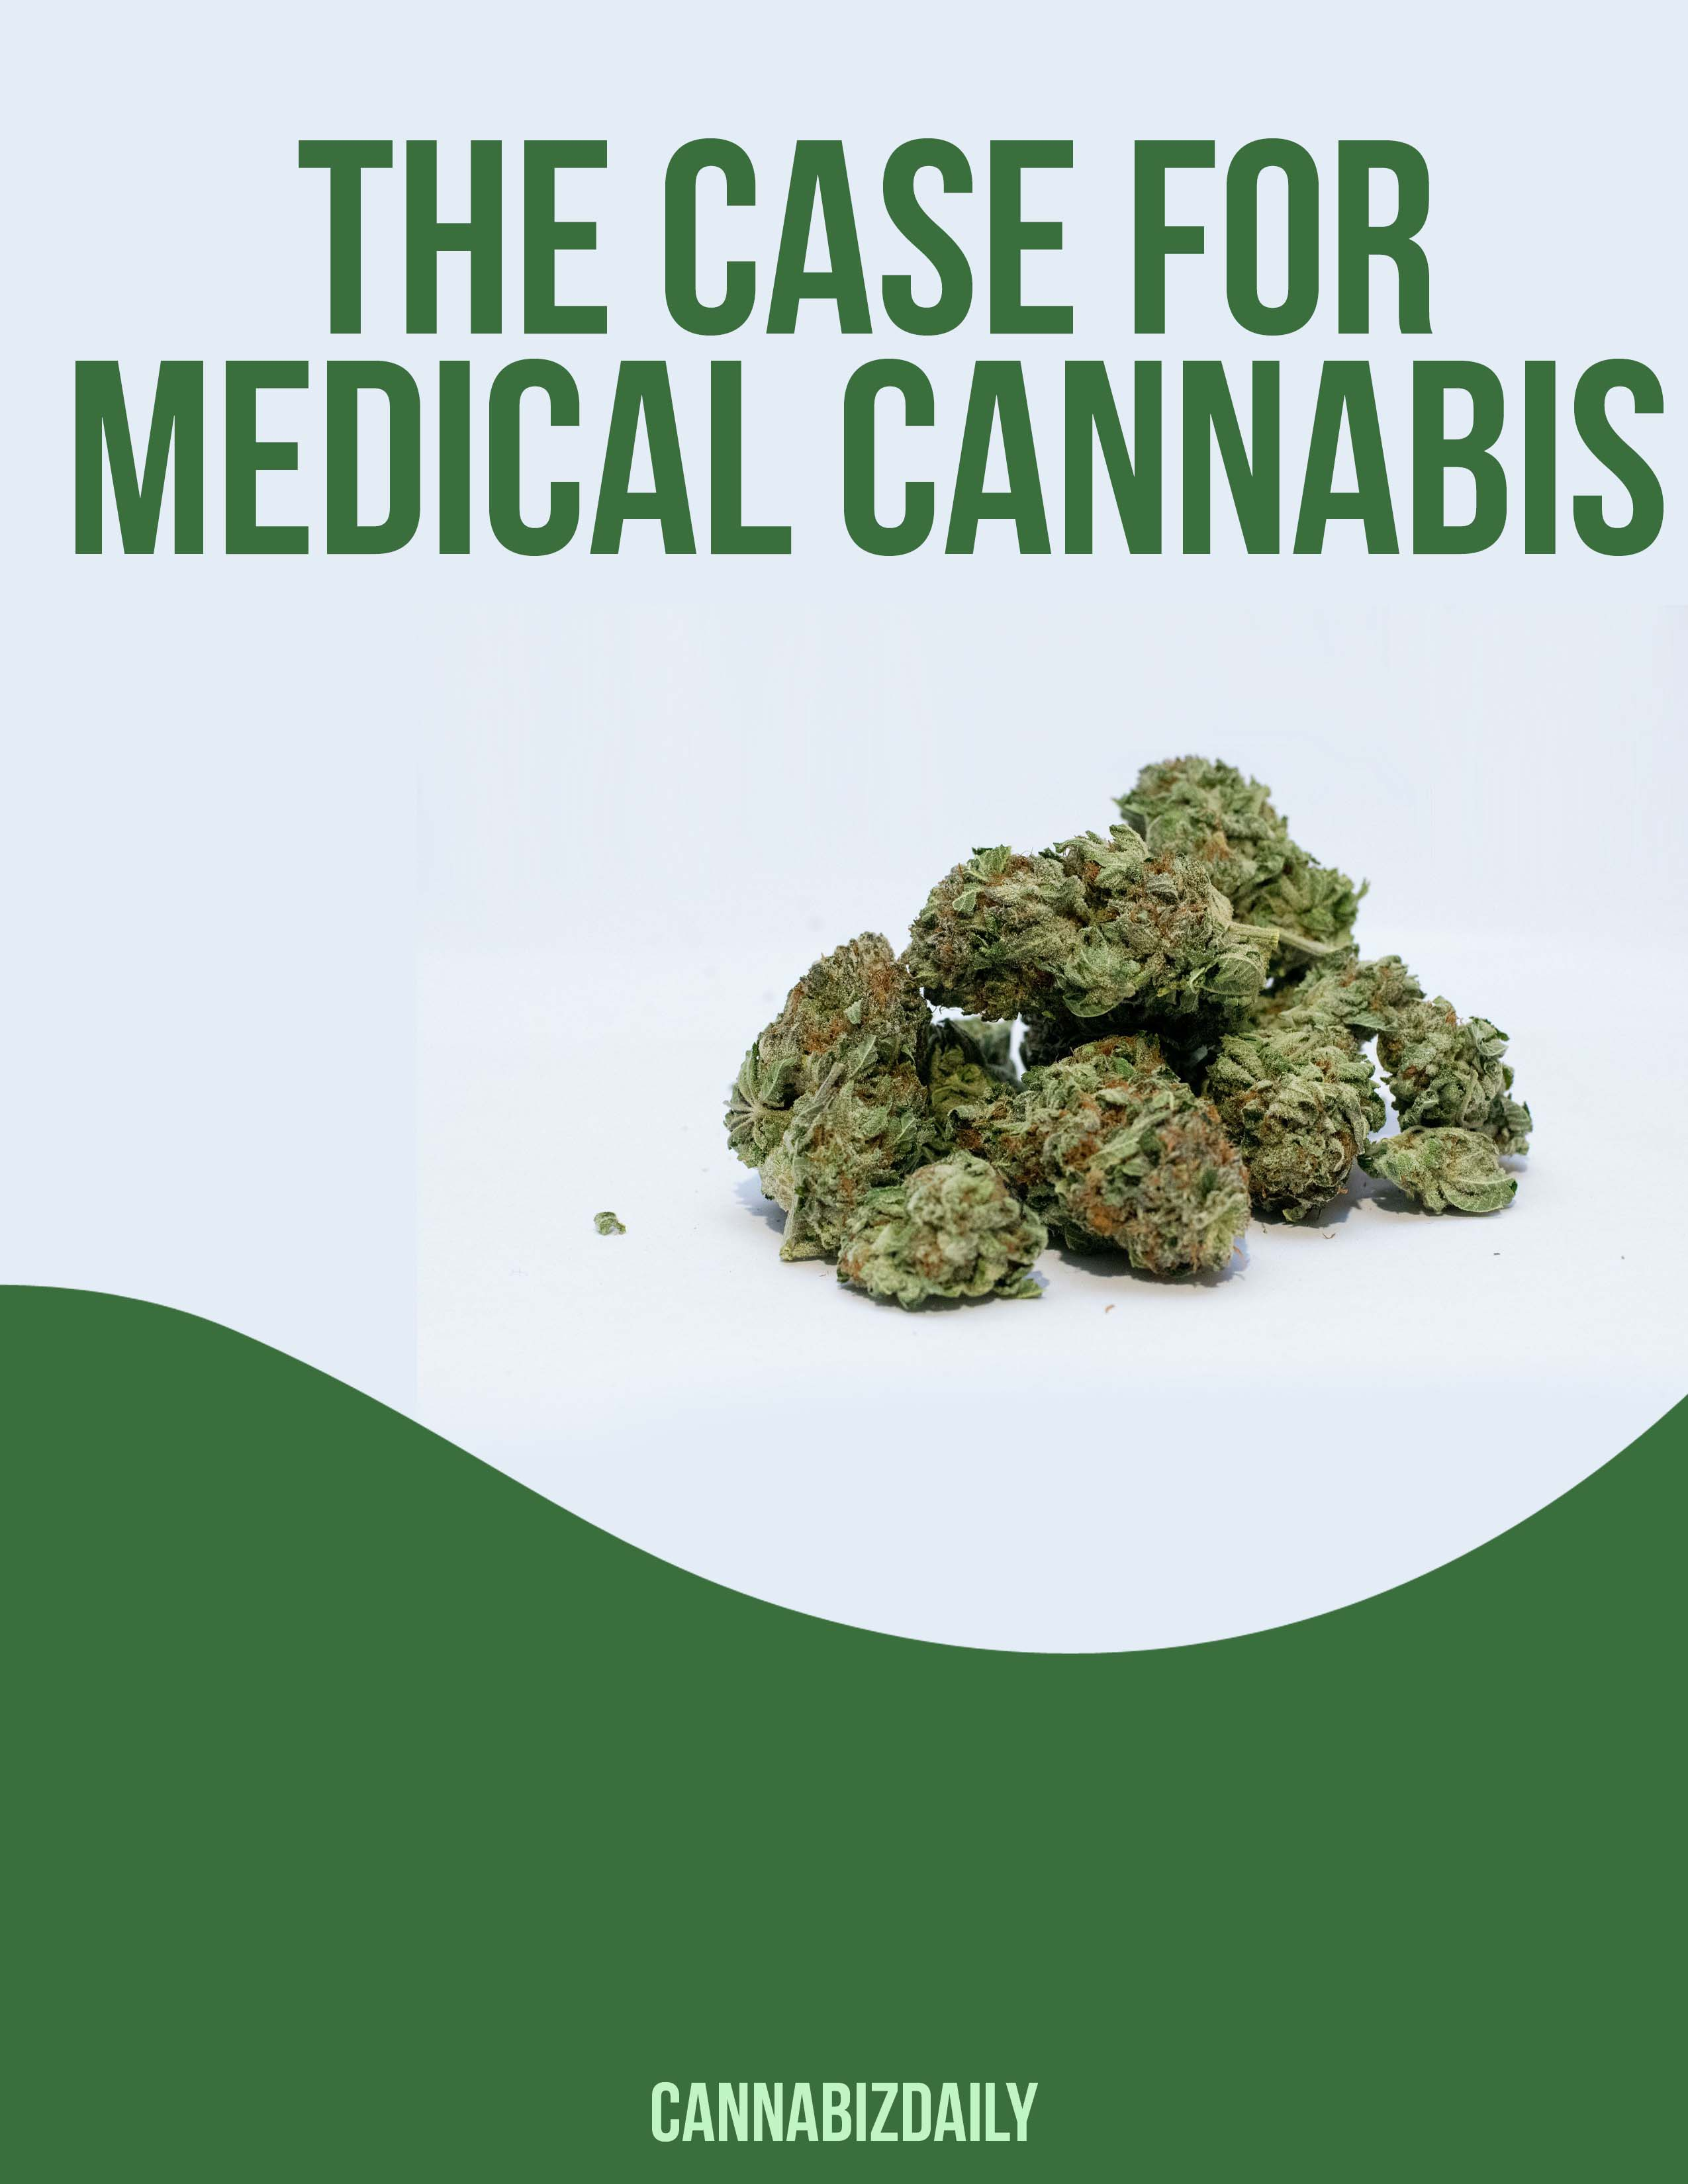 Free e book the case for medical cannabis cannabizdaily free e book the case for medical cannabis fandeluxe Choice Image